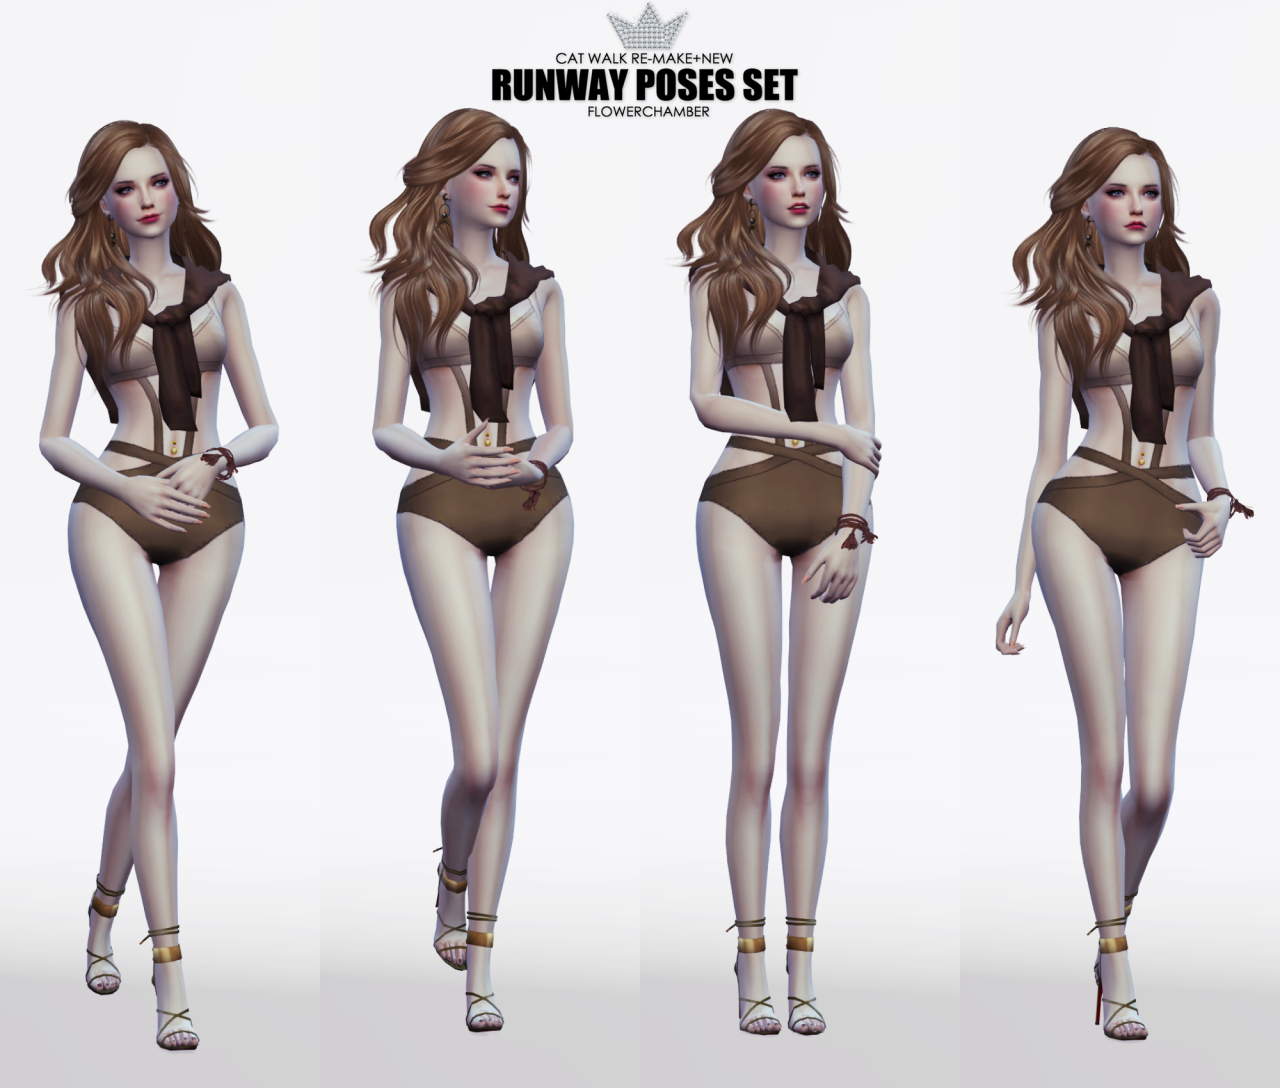 RUNWAY POSES SET by FlowerChamber